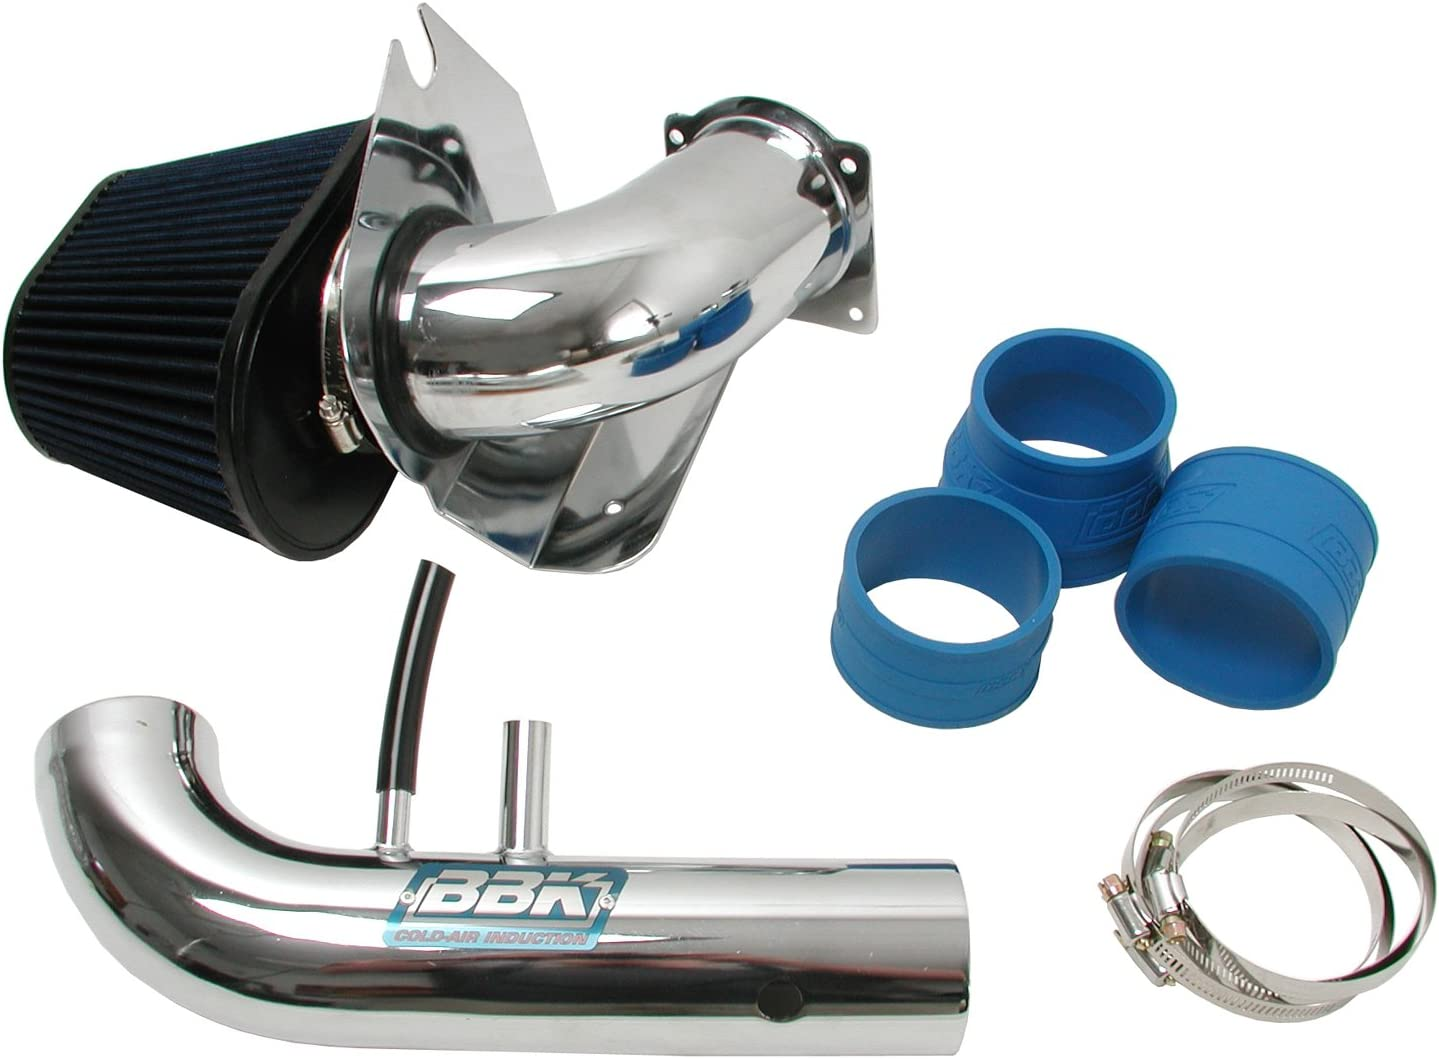 BBK 1718 Chrome Fenderwell Cold Air Induction Intake System for Ford Mustang GT 4.6L 2V